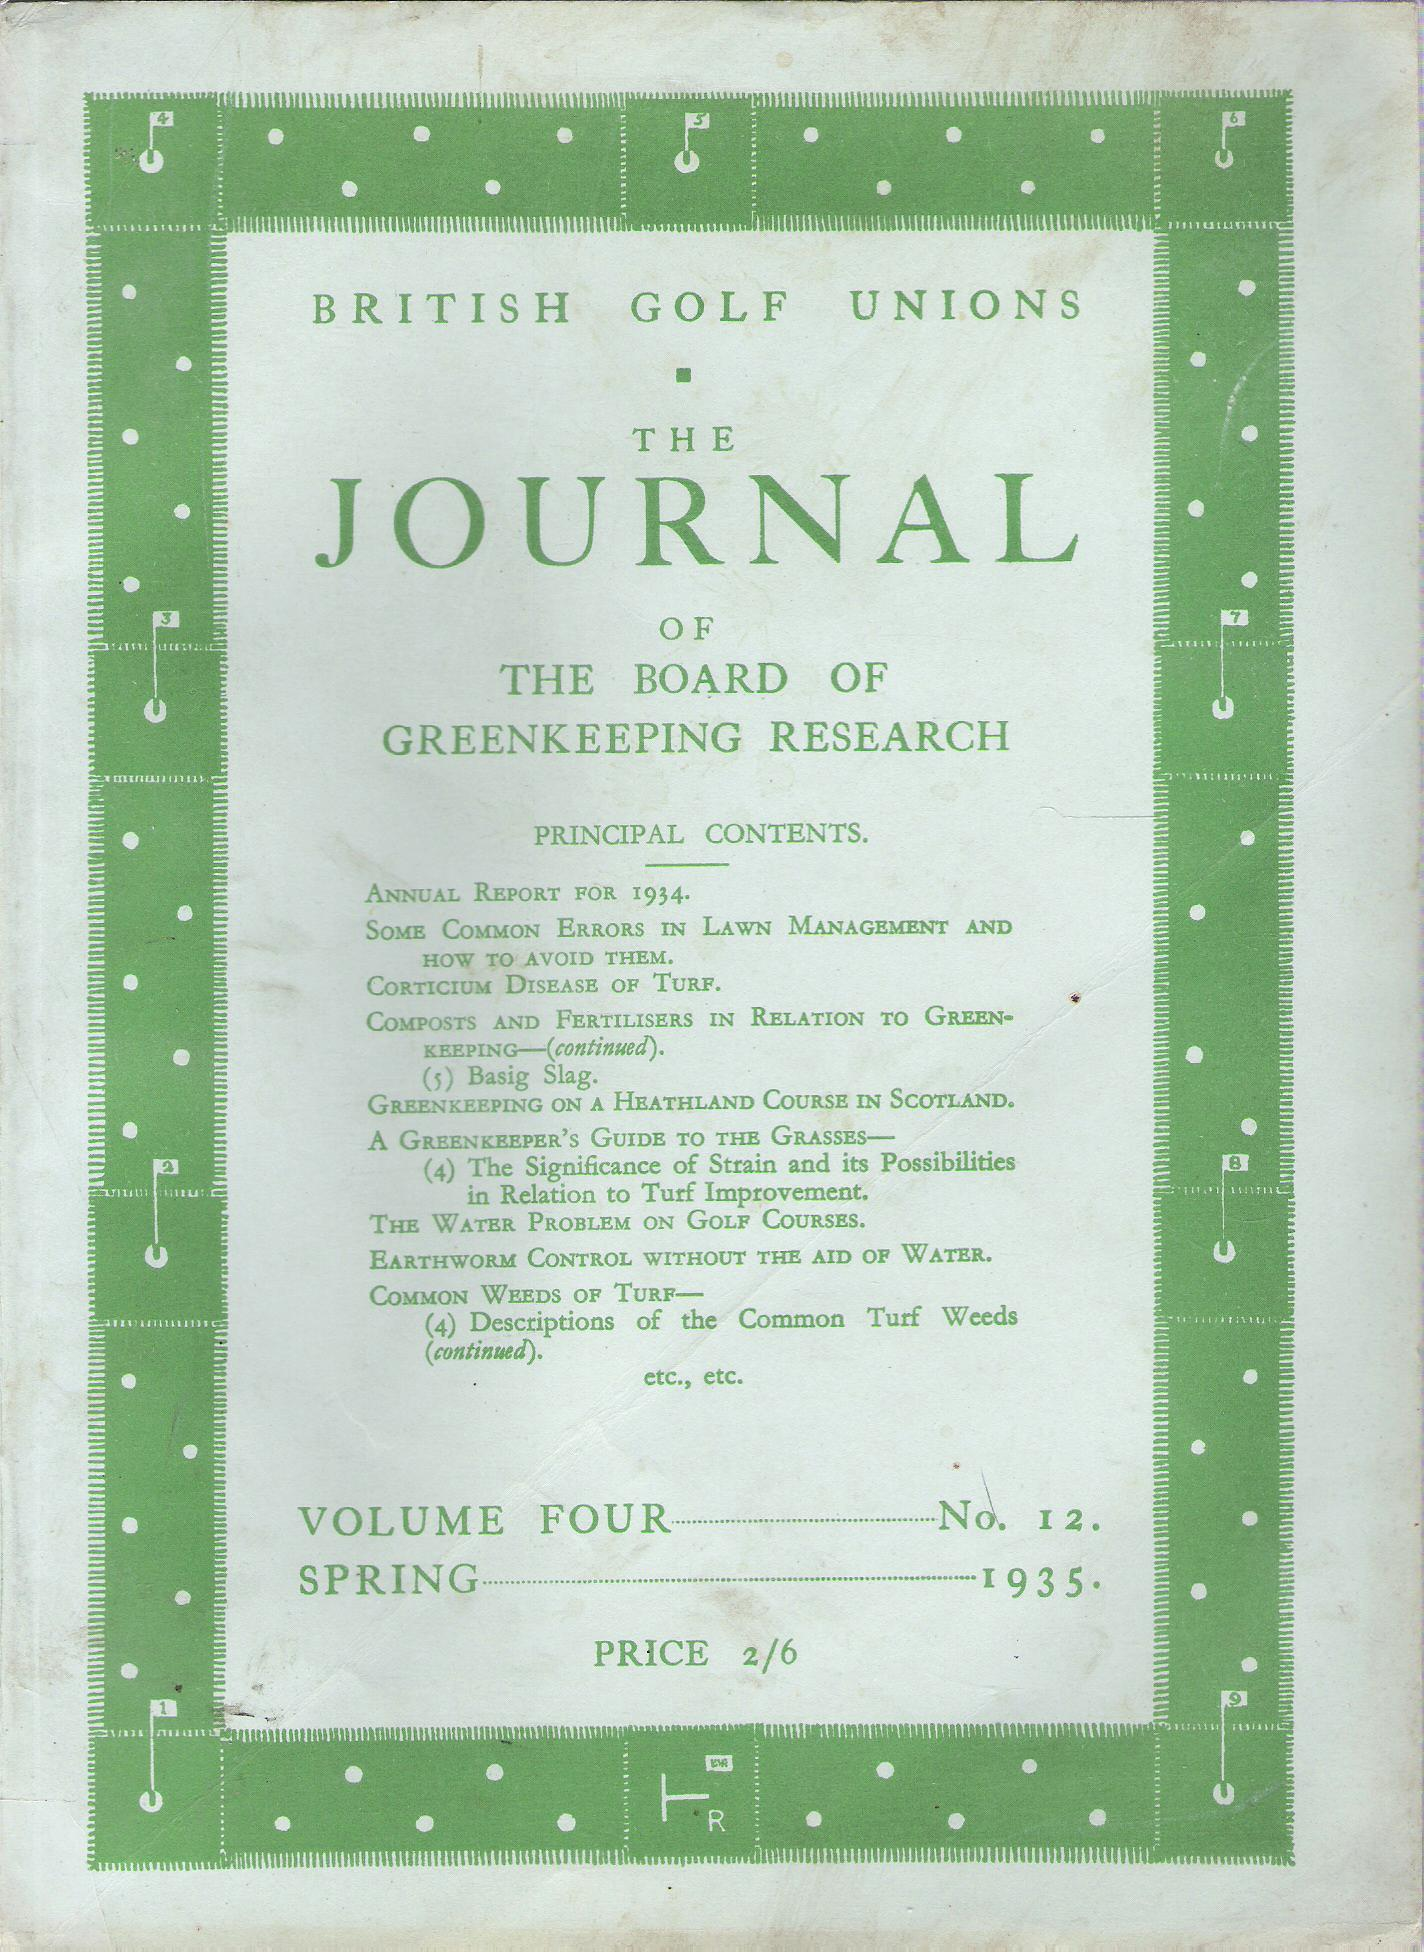 Image for British Golf Unions: The Journal of the Board of Greenkeeping Research, Volume IV, number 12.